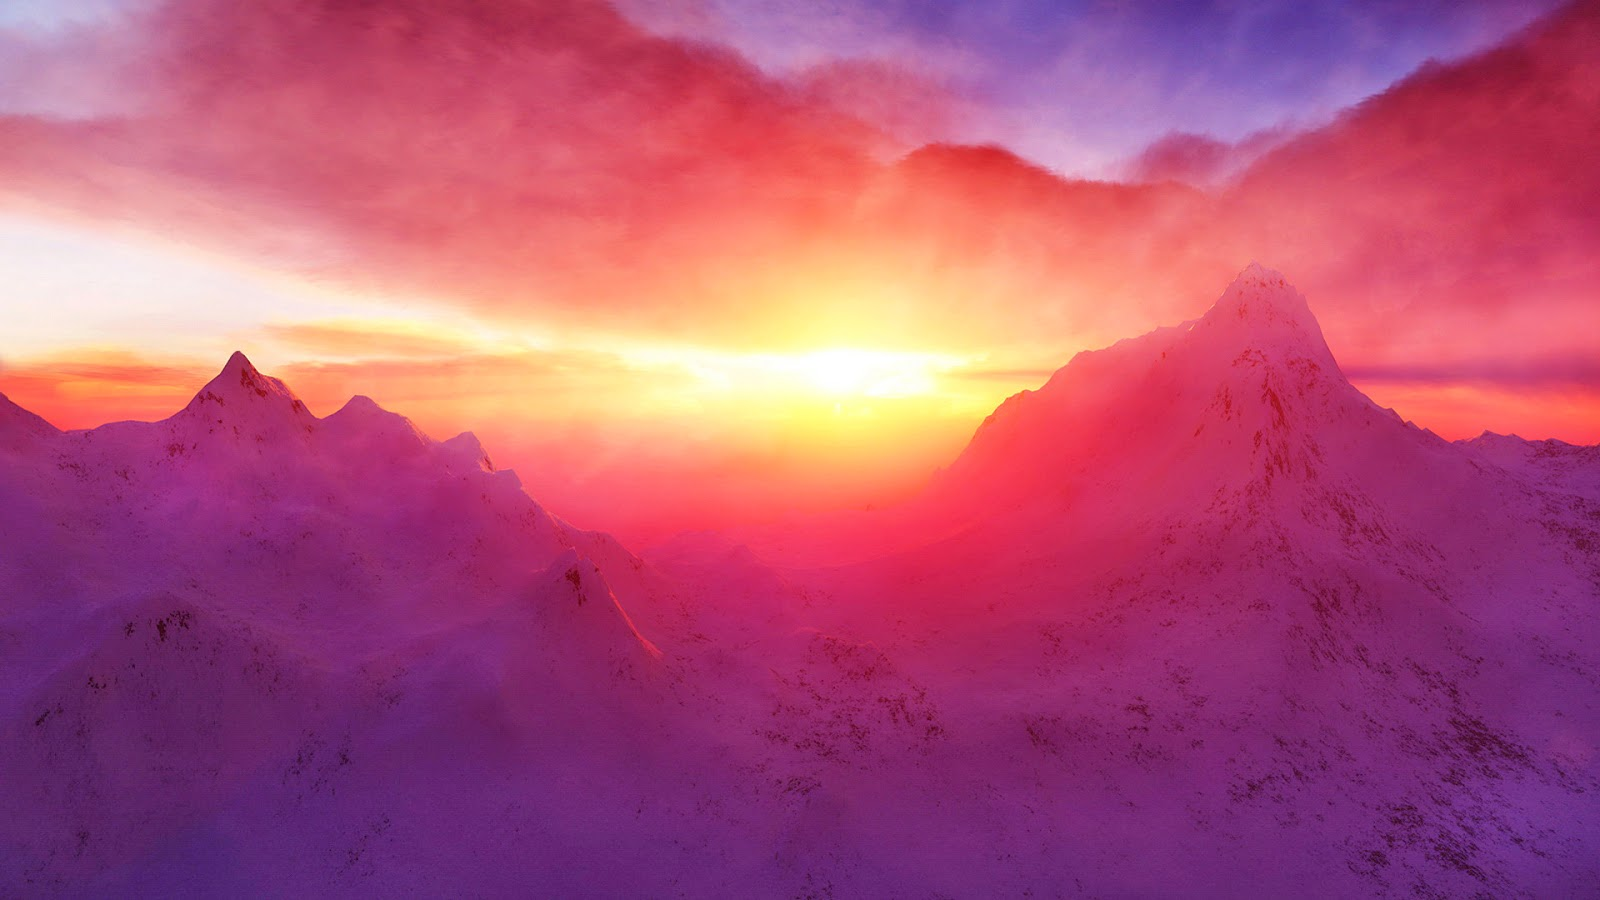 pink snow mountain wallpaper - photo #11